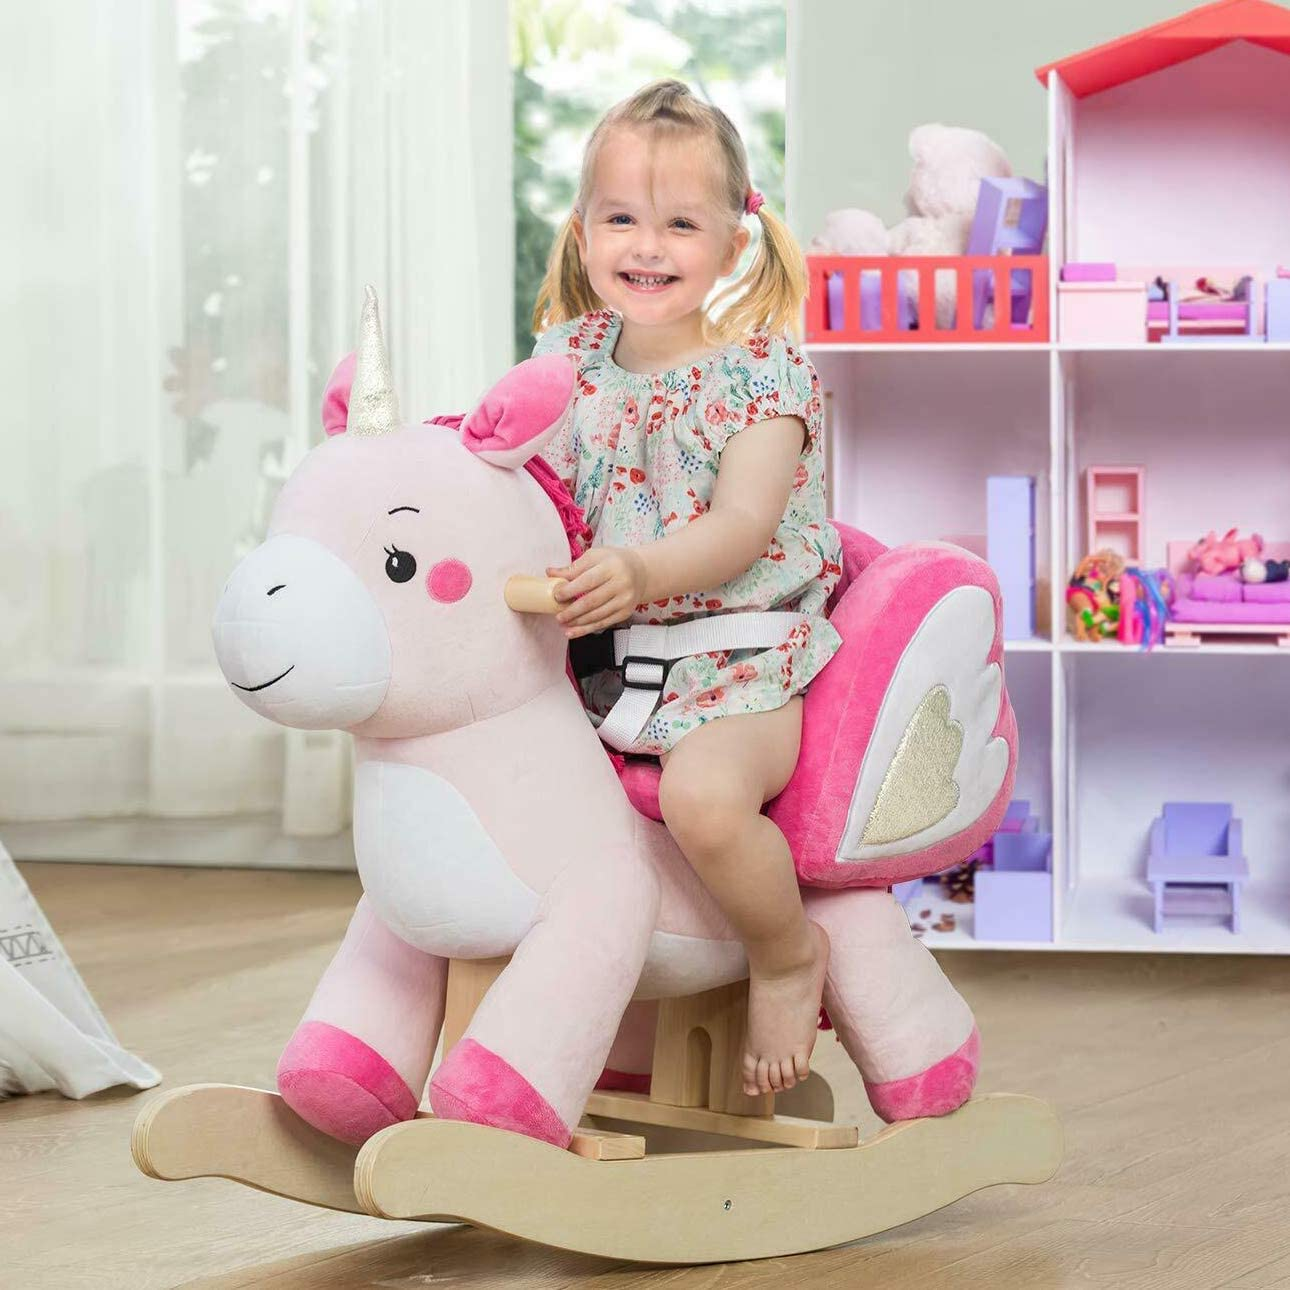 labebe - Baby Rocking Horse, Ride Unicorn, Kid Ride On Toy for 1-3 Year Old, Infant (Boy Girl) Plush Animal Rocker, Toddler/Child Stuffed Ride Toy